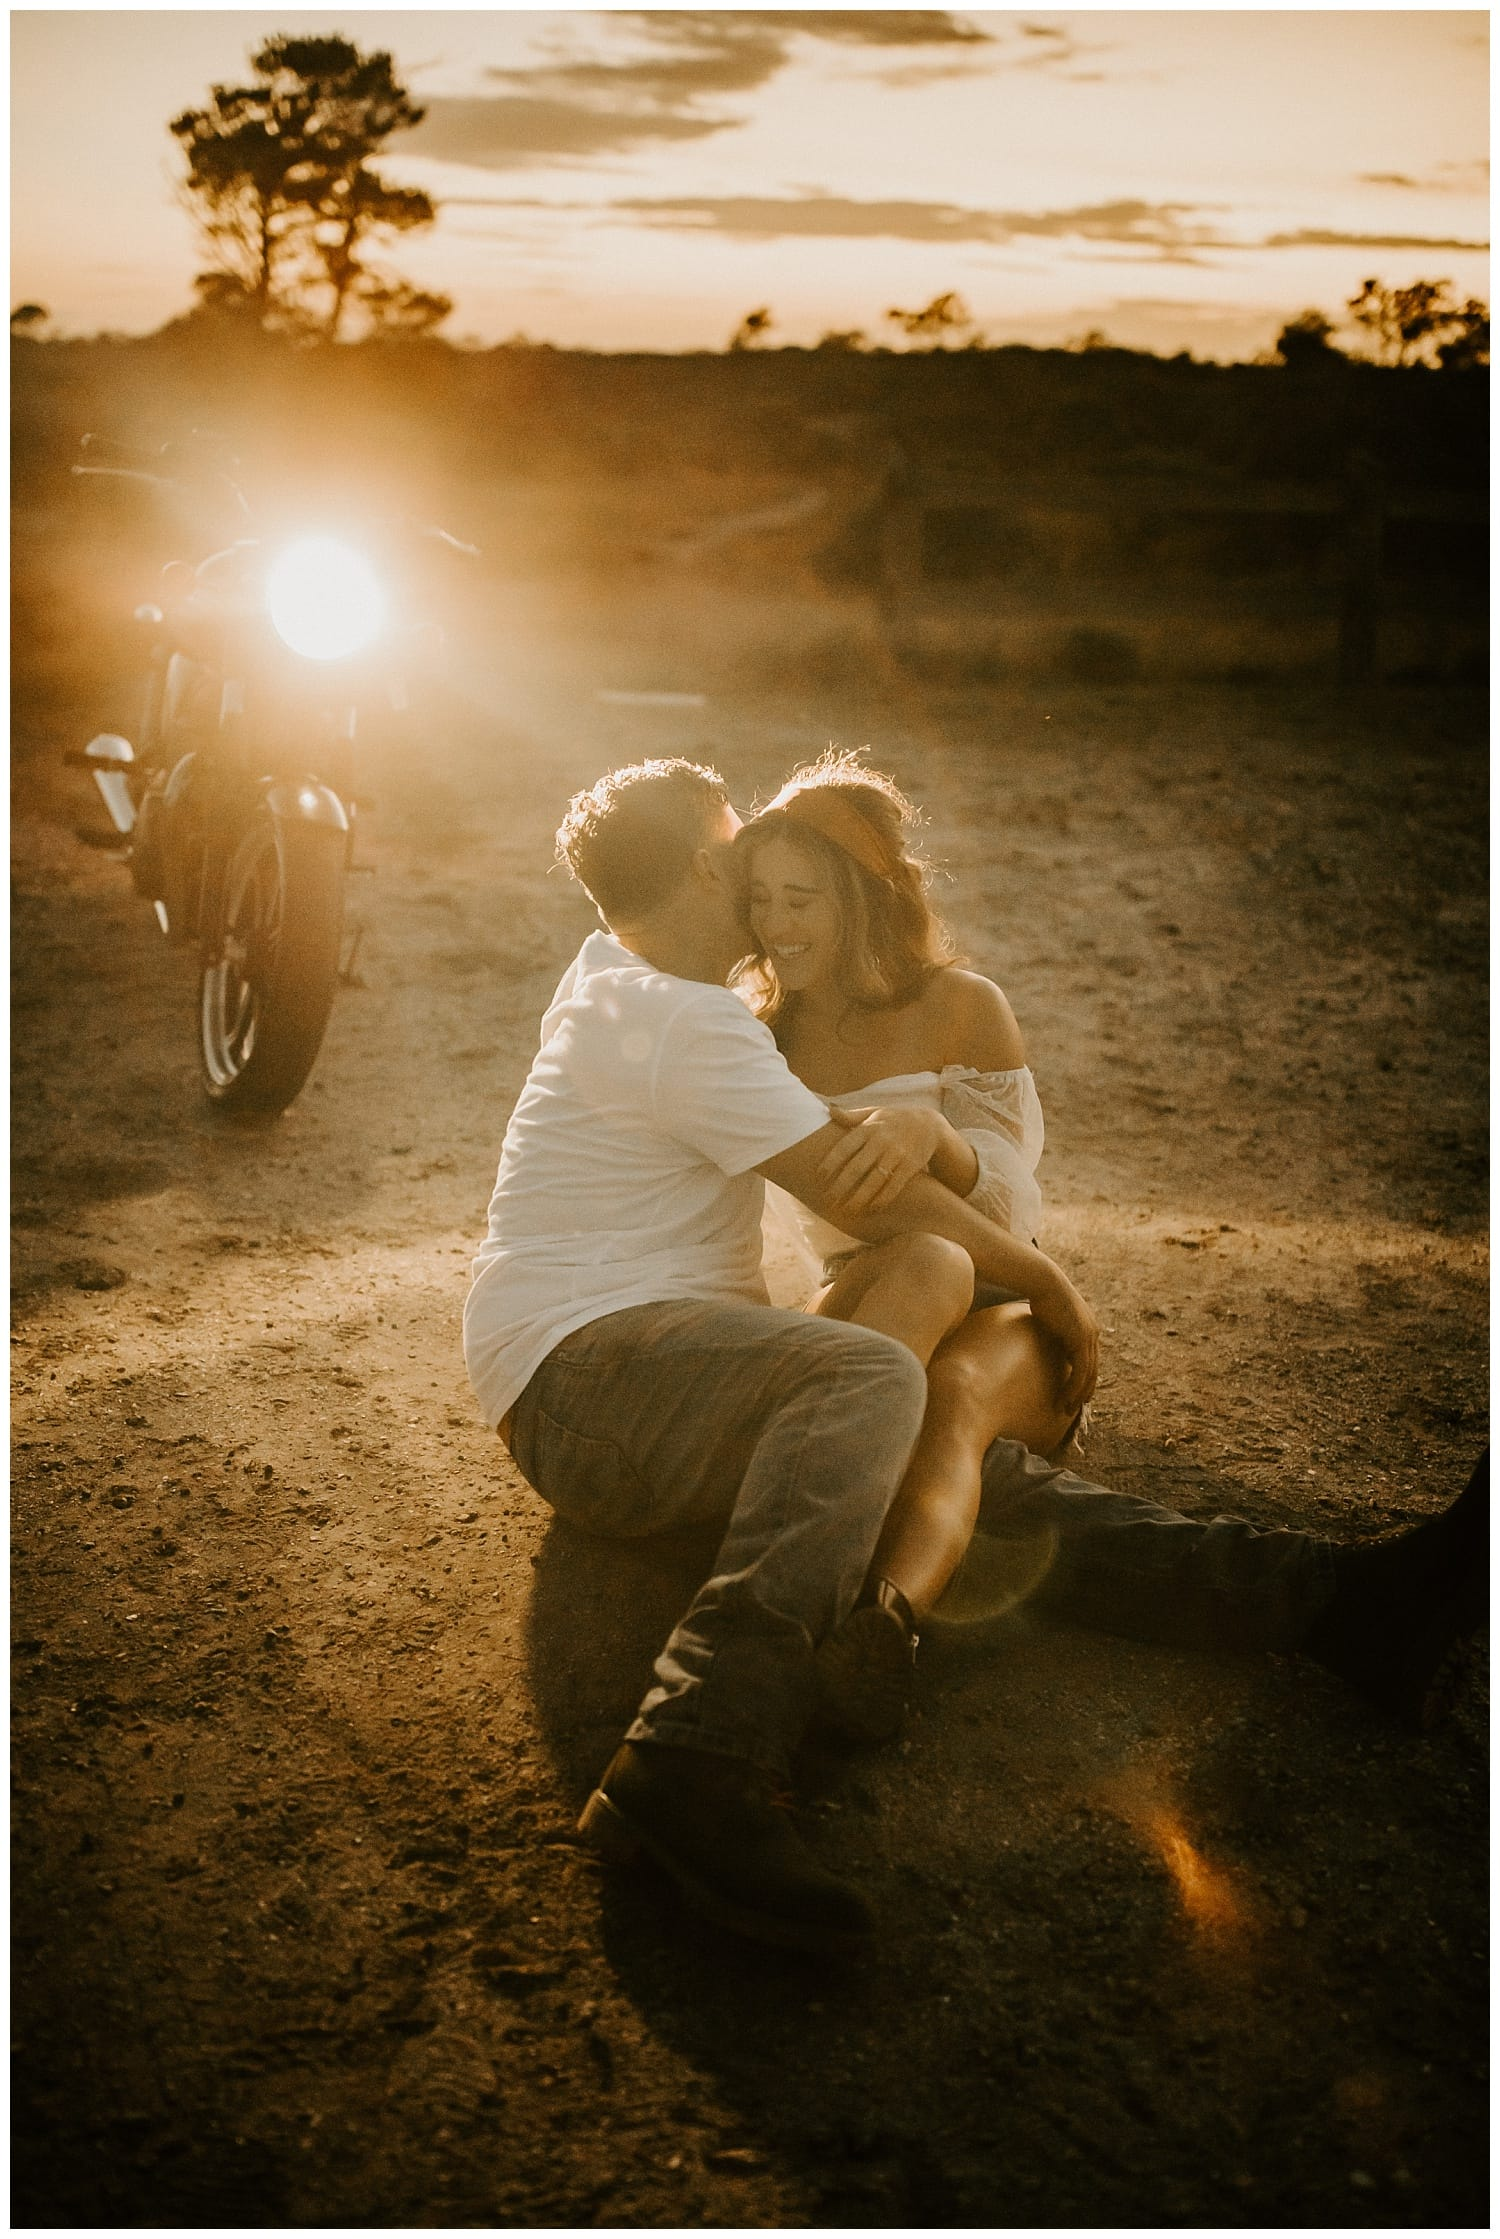 Edgy Motorcycle Engagement Photos_0055.jpg